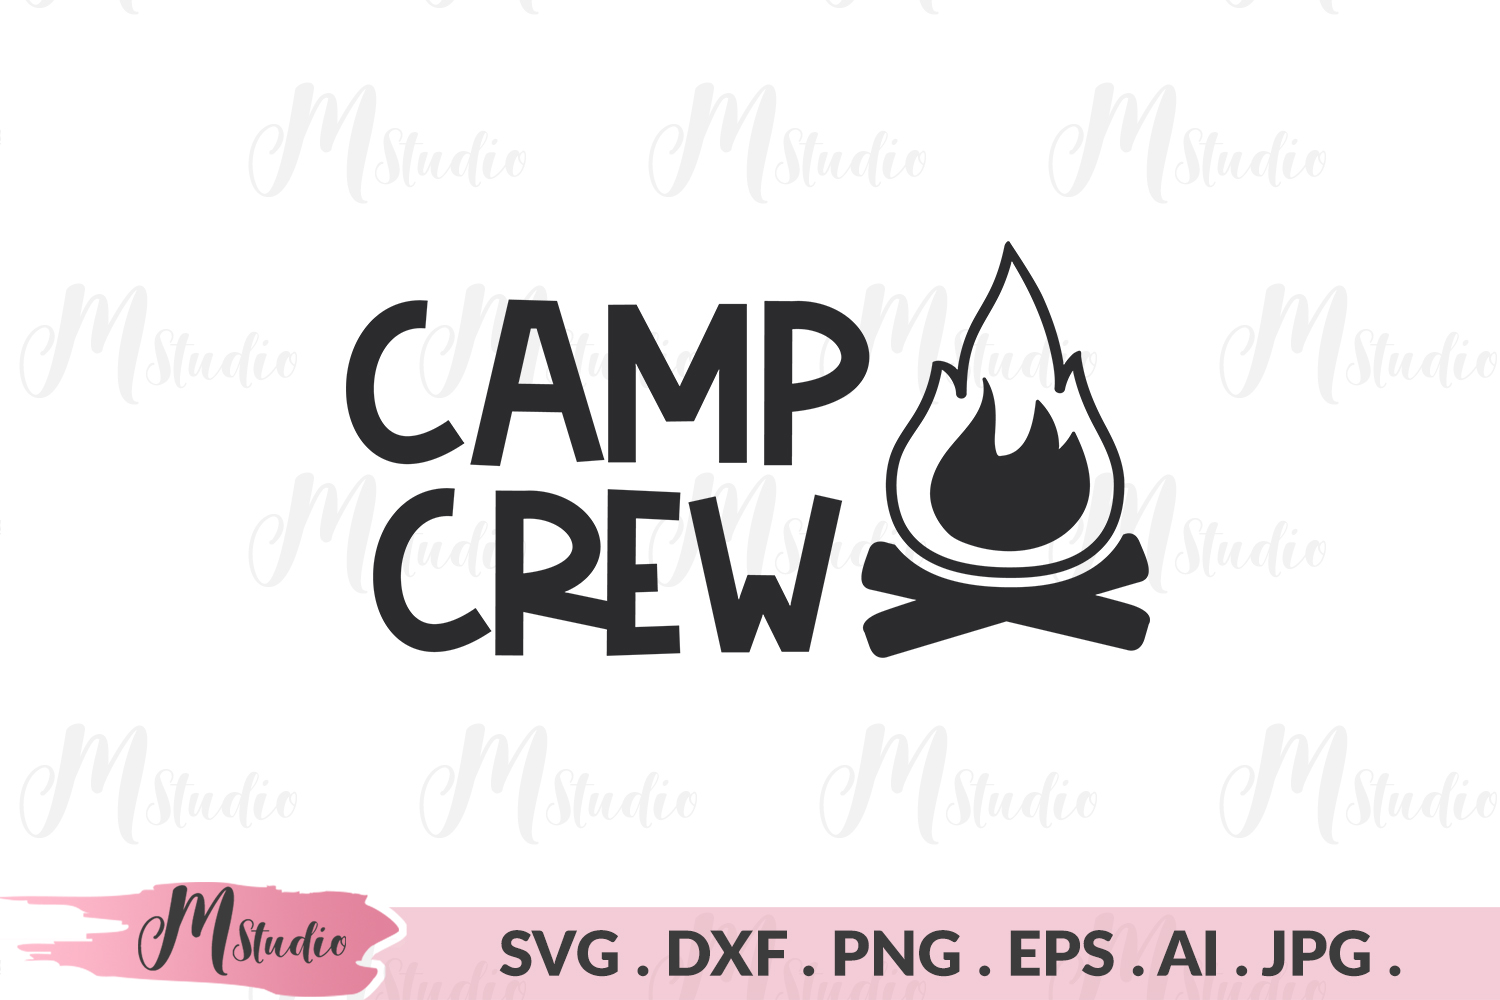 Camp crew svg. example image 1